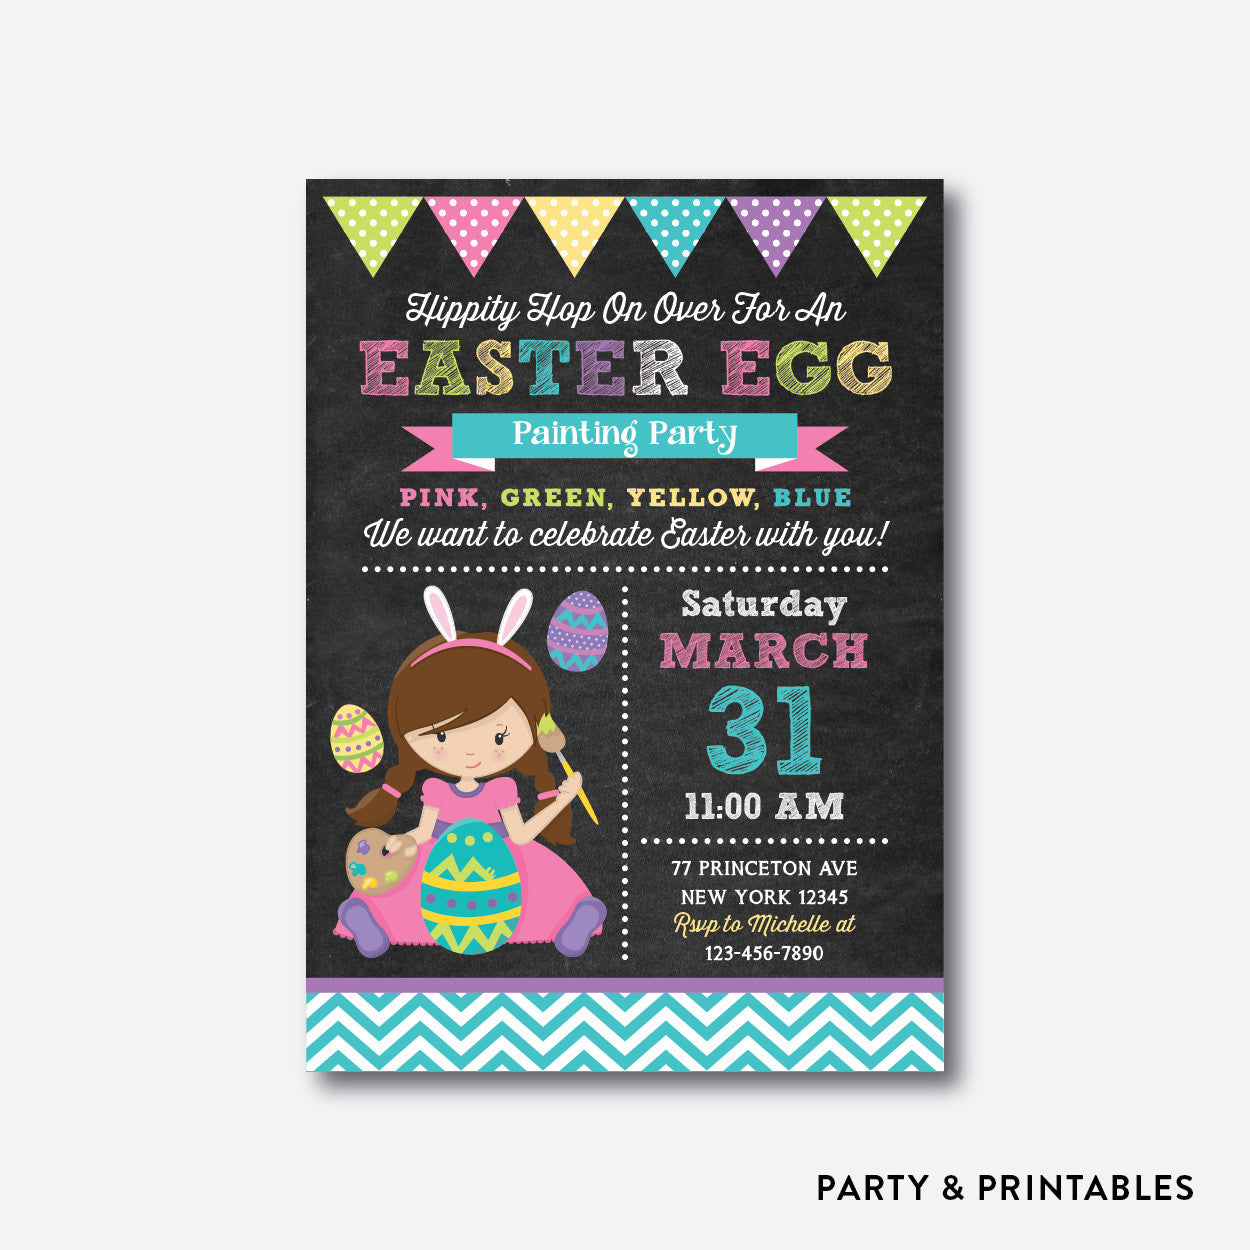 Easter Egg Painting Party Holiday Invitation / Personalized (CHI.08), invitation - Party and Printables